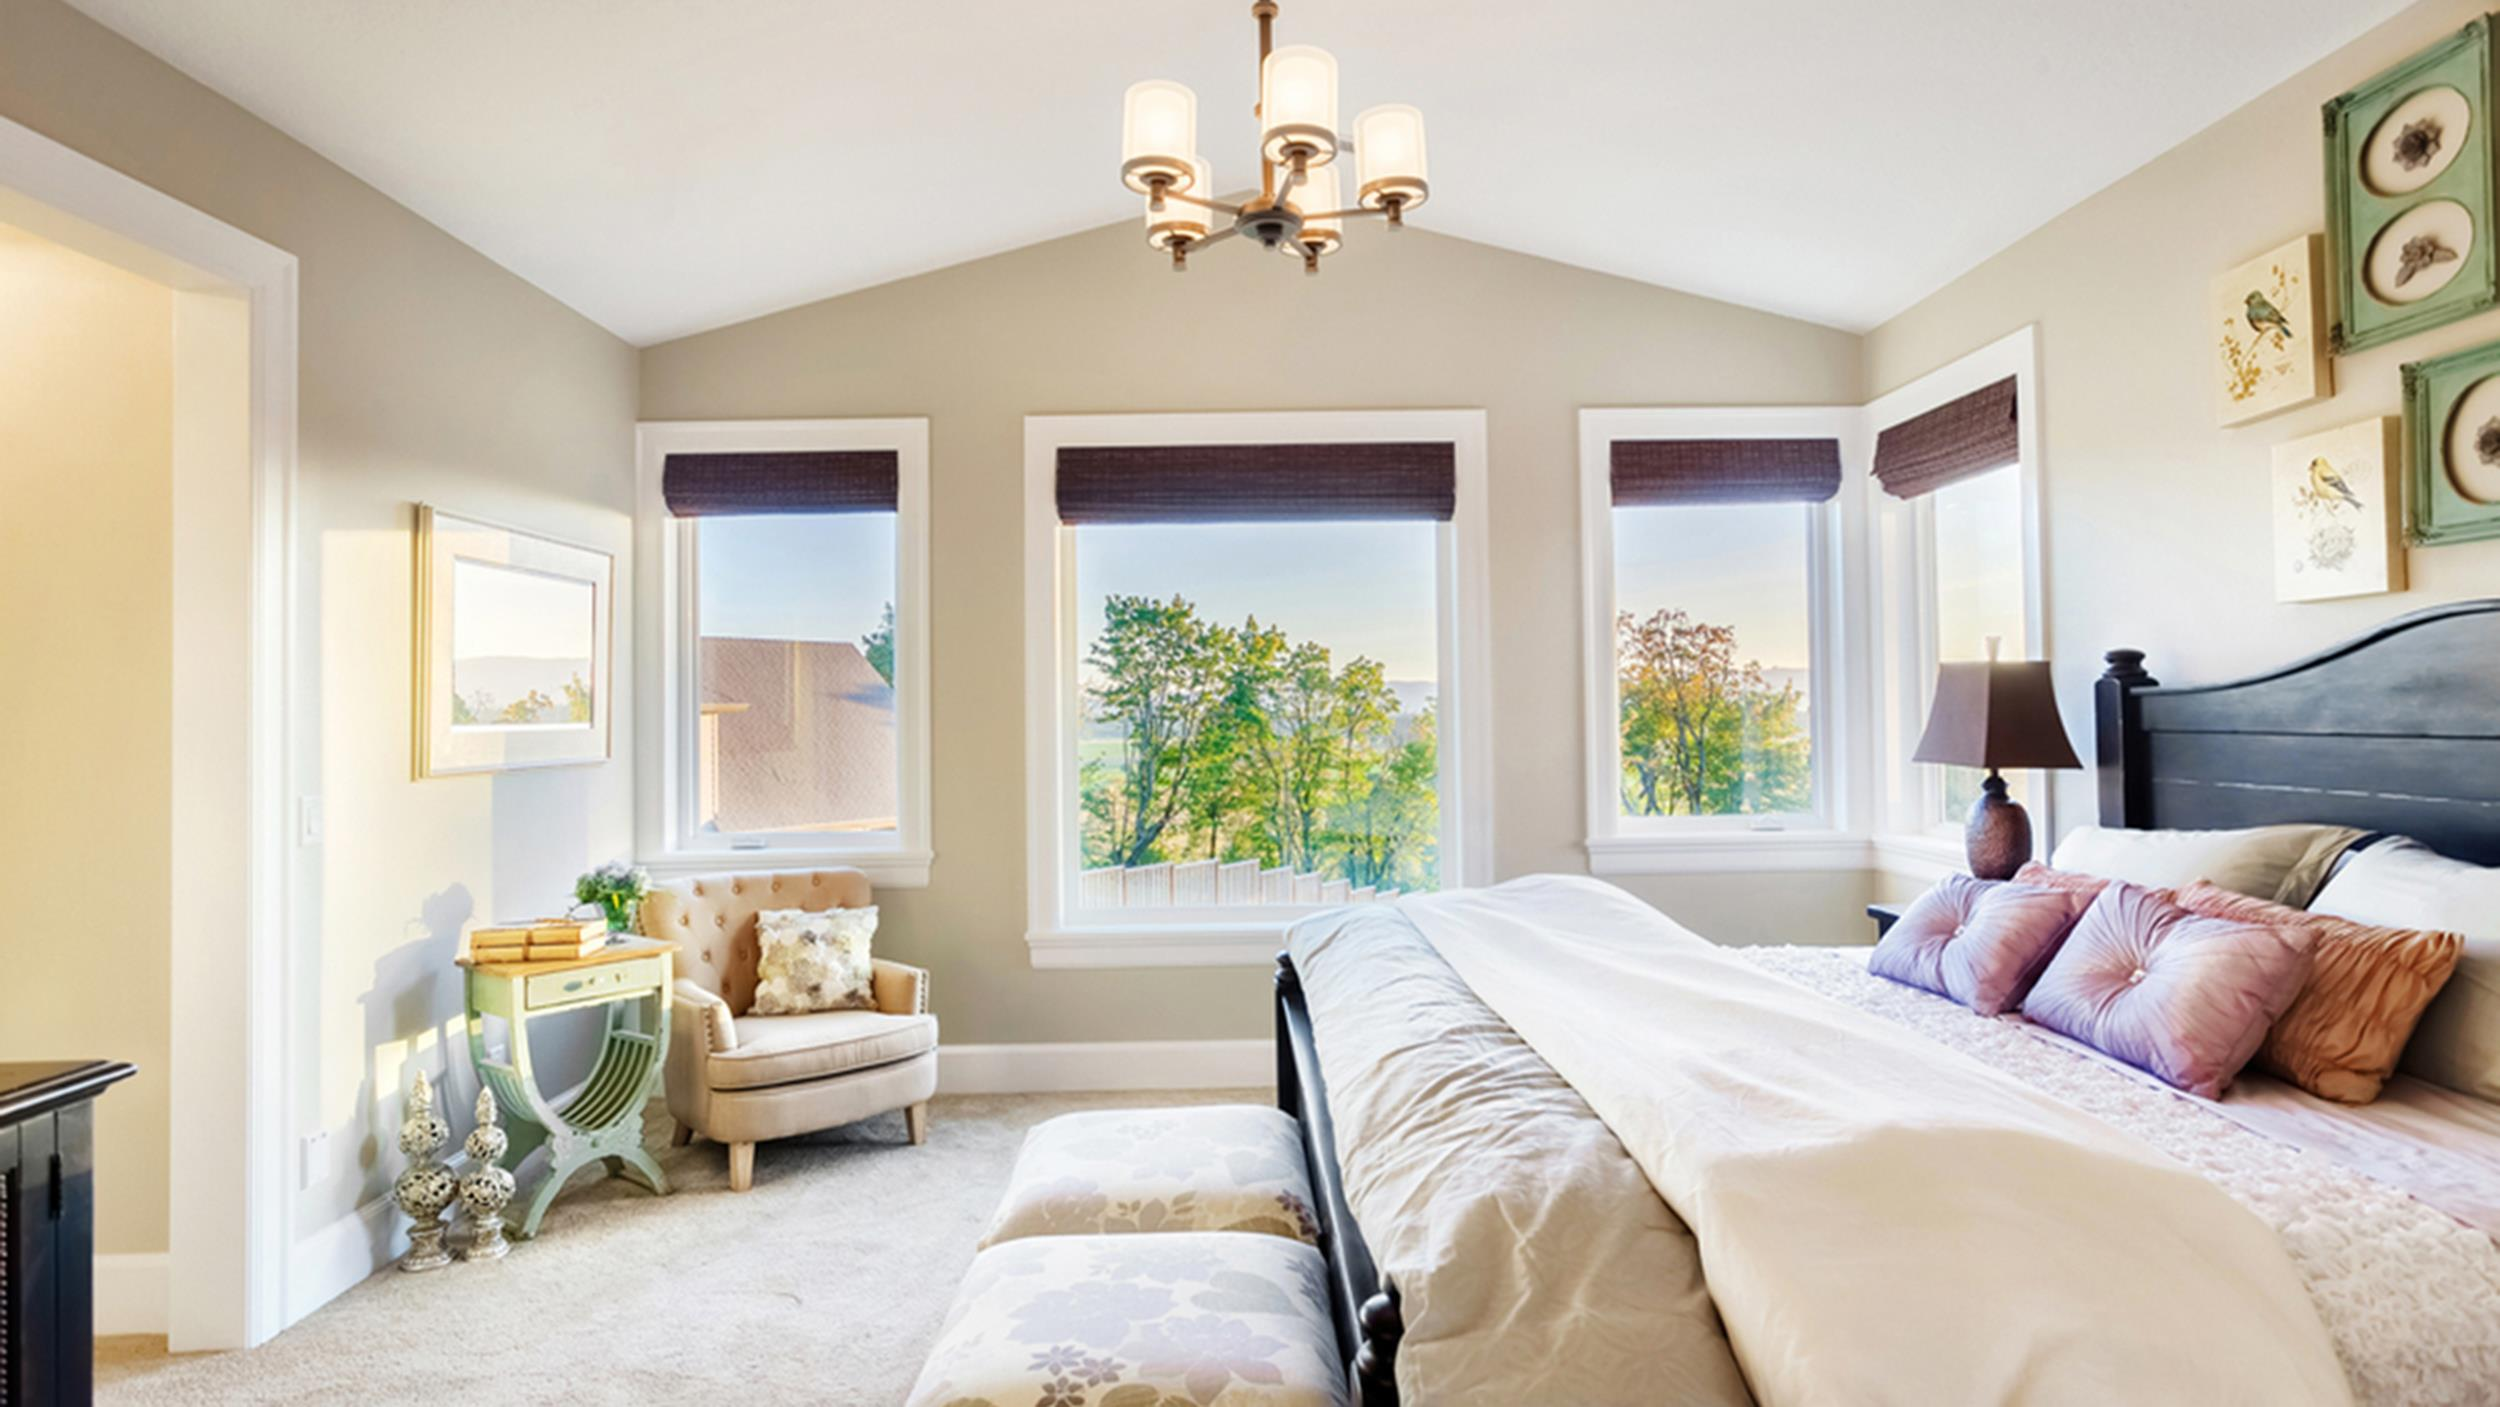 how to clean headboard for spring cleaning